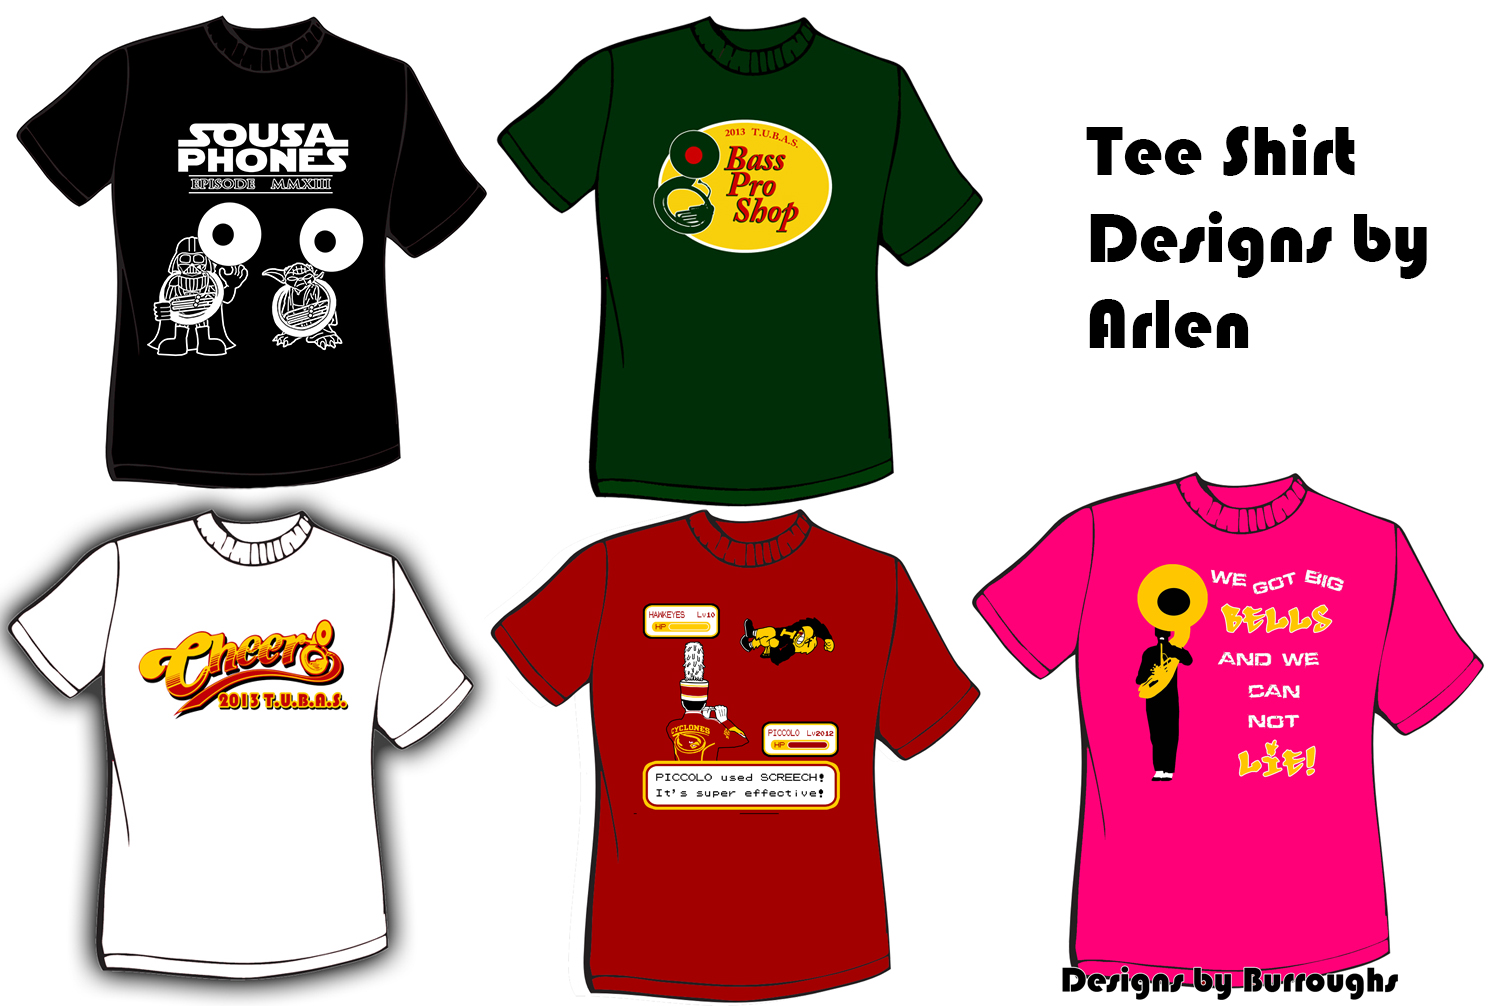 Shirt design examples -  Design T Shirts And Even For Use With Software Development Click Links For Examples Of My Work